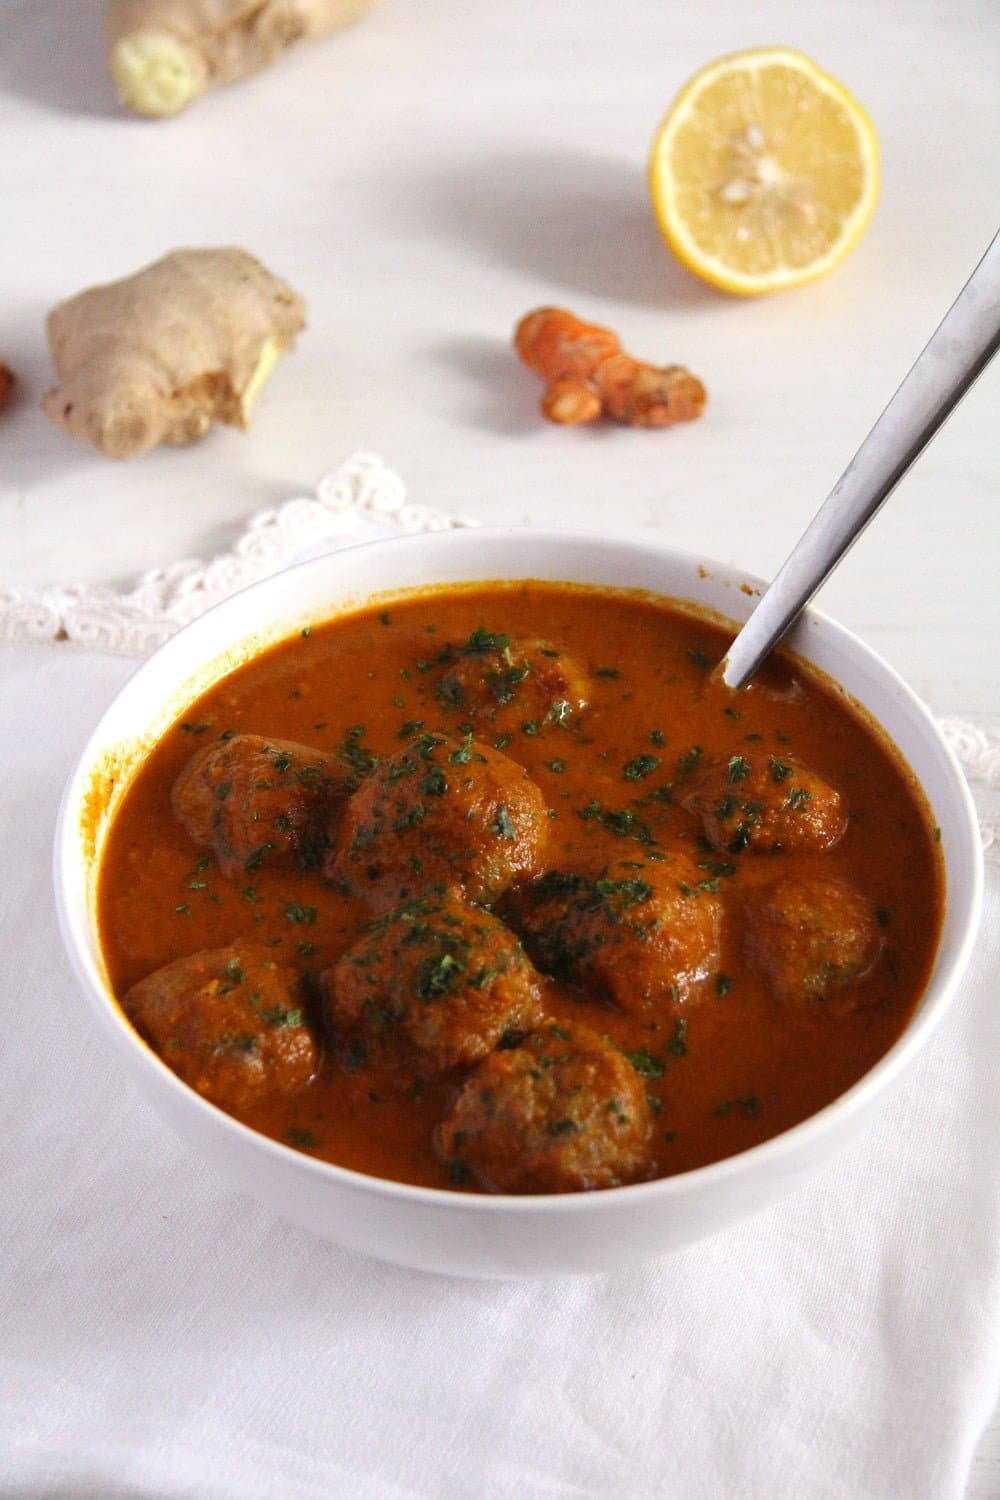 meatballs turkey spicy Turkey Meatballs in Turmeric Sauce